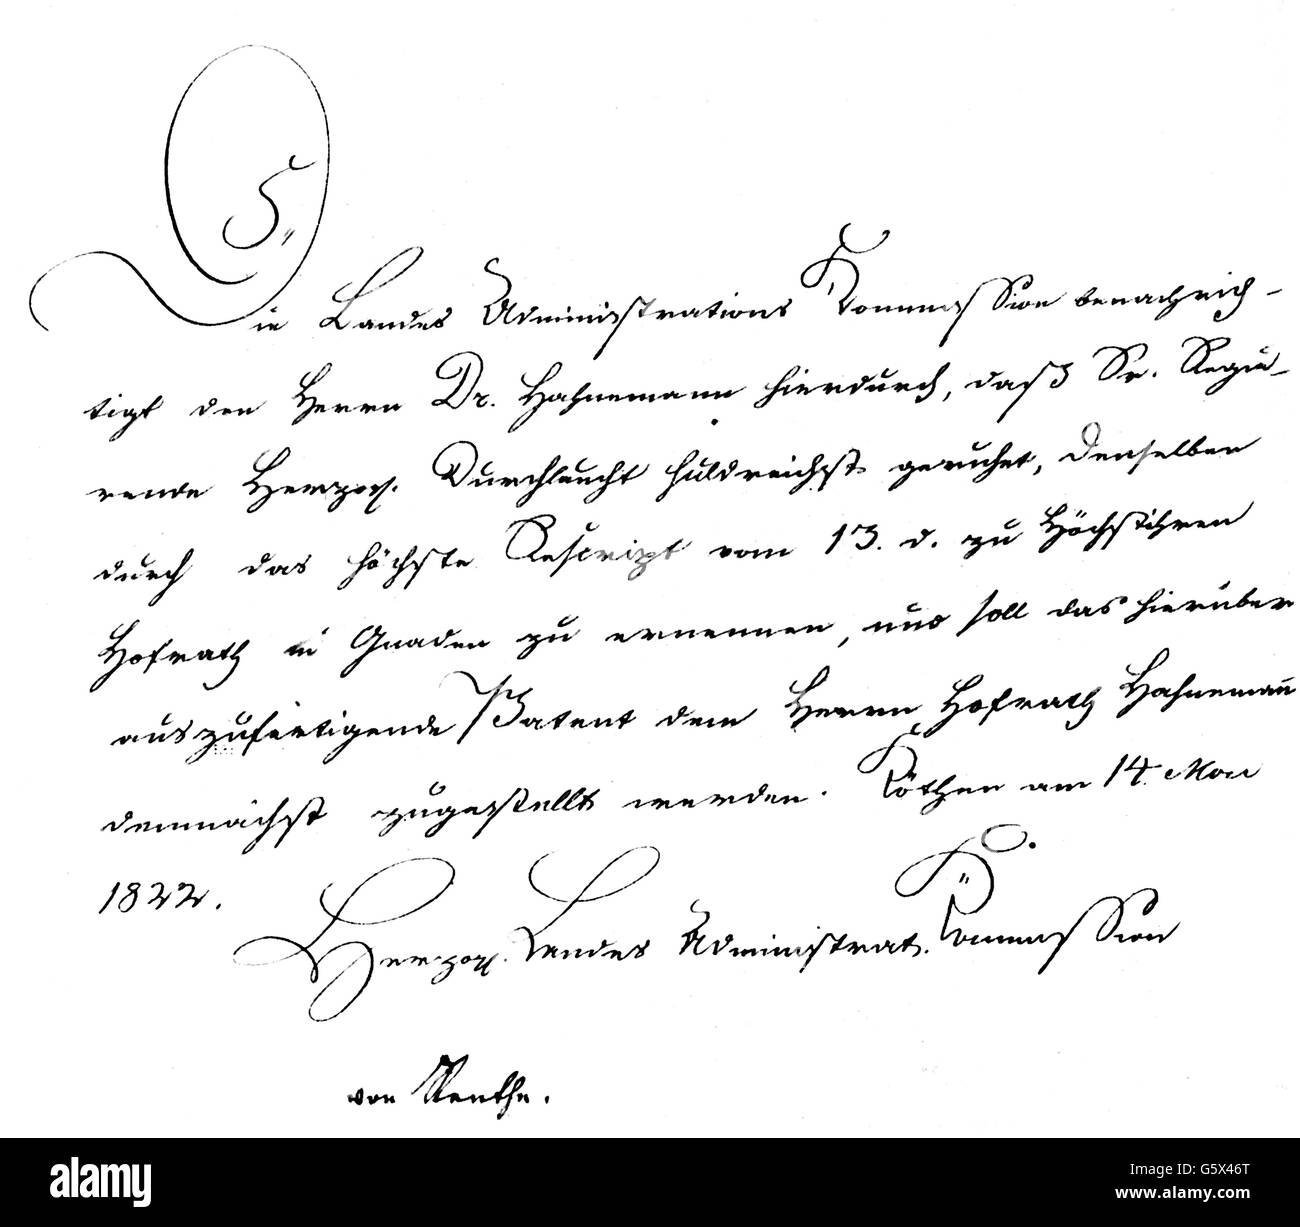 Hahnemann, Christian Friedrich Samuel, 10.4.1755 - 2.7.1843, German physician / medical doctor, letter with his - Stock Image